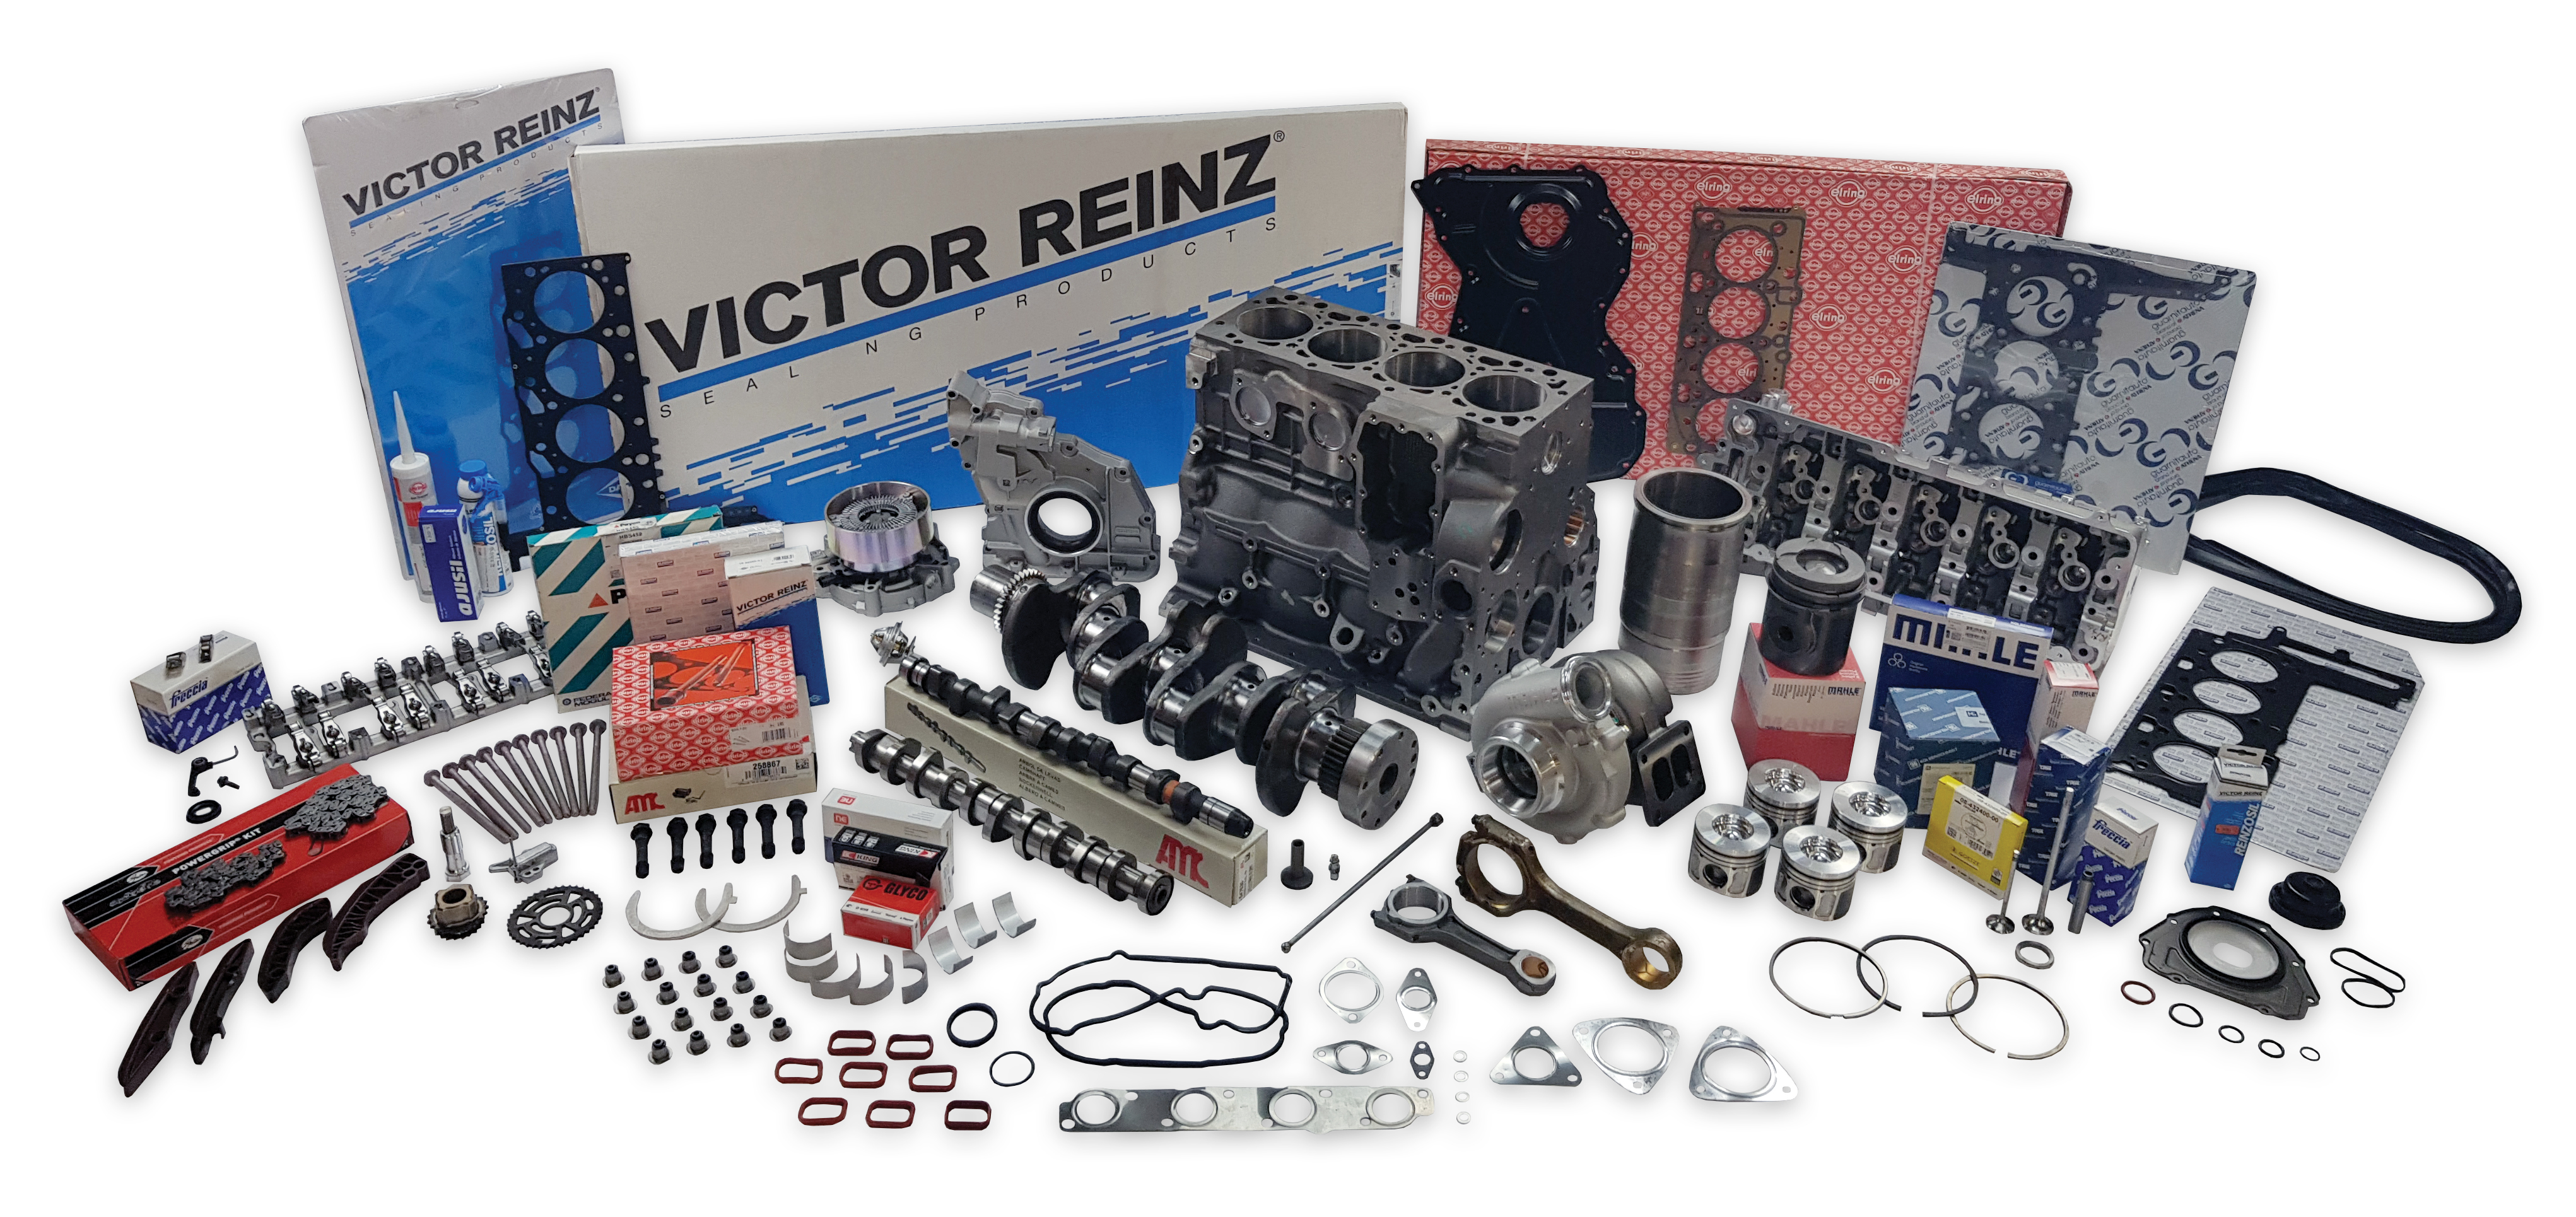 ENGINE PARTS for All Engines - Imexpart Limited